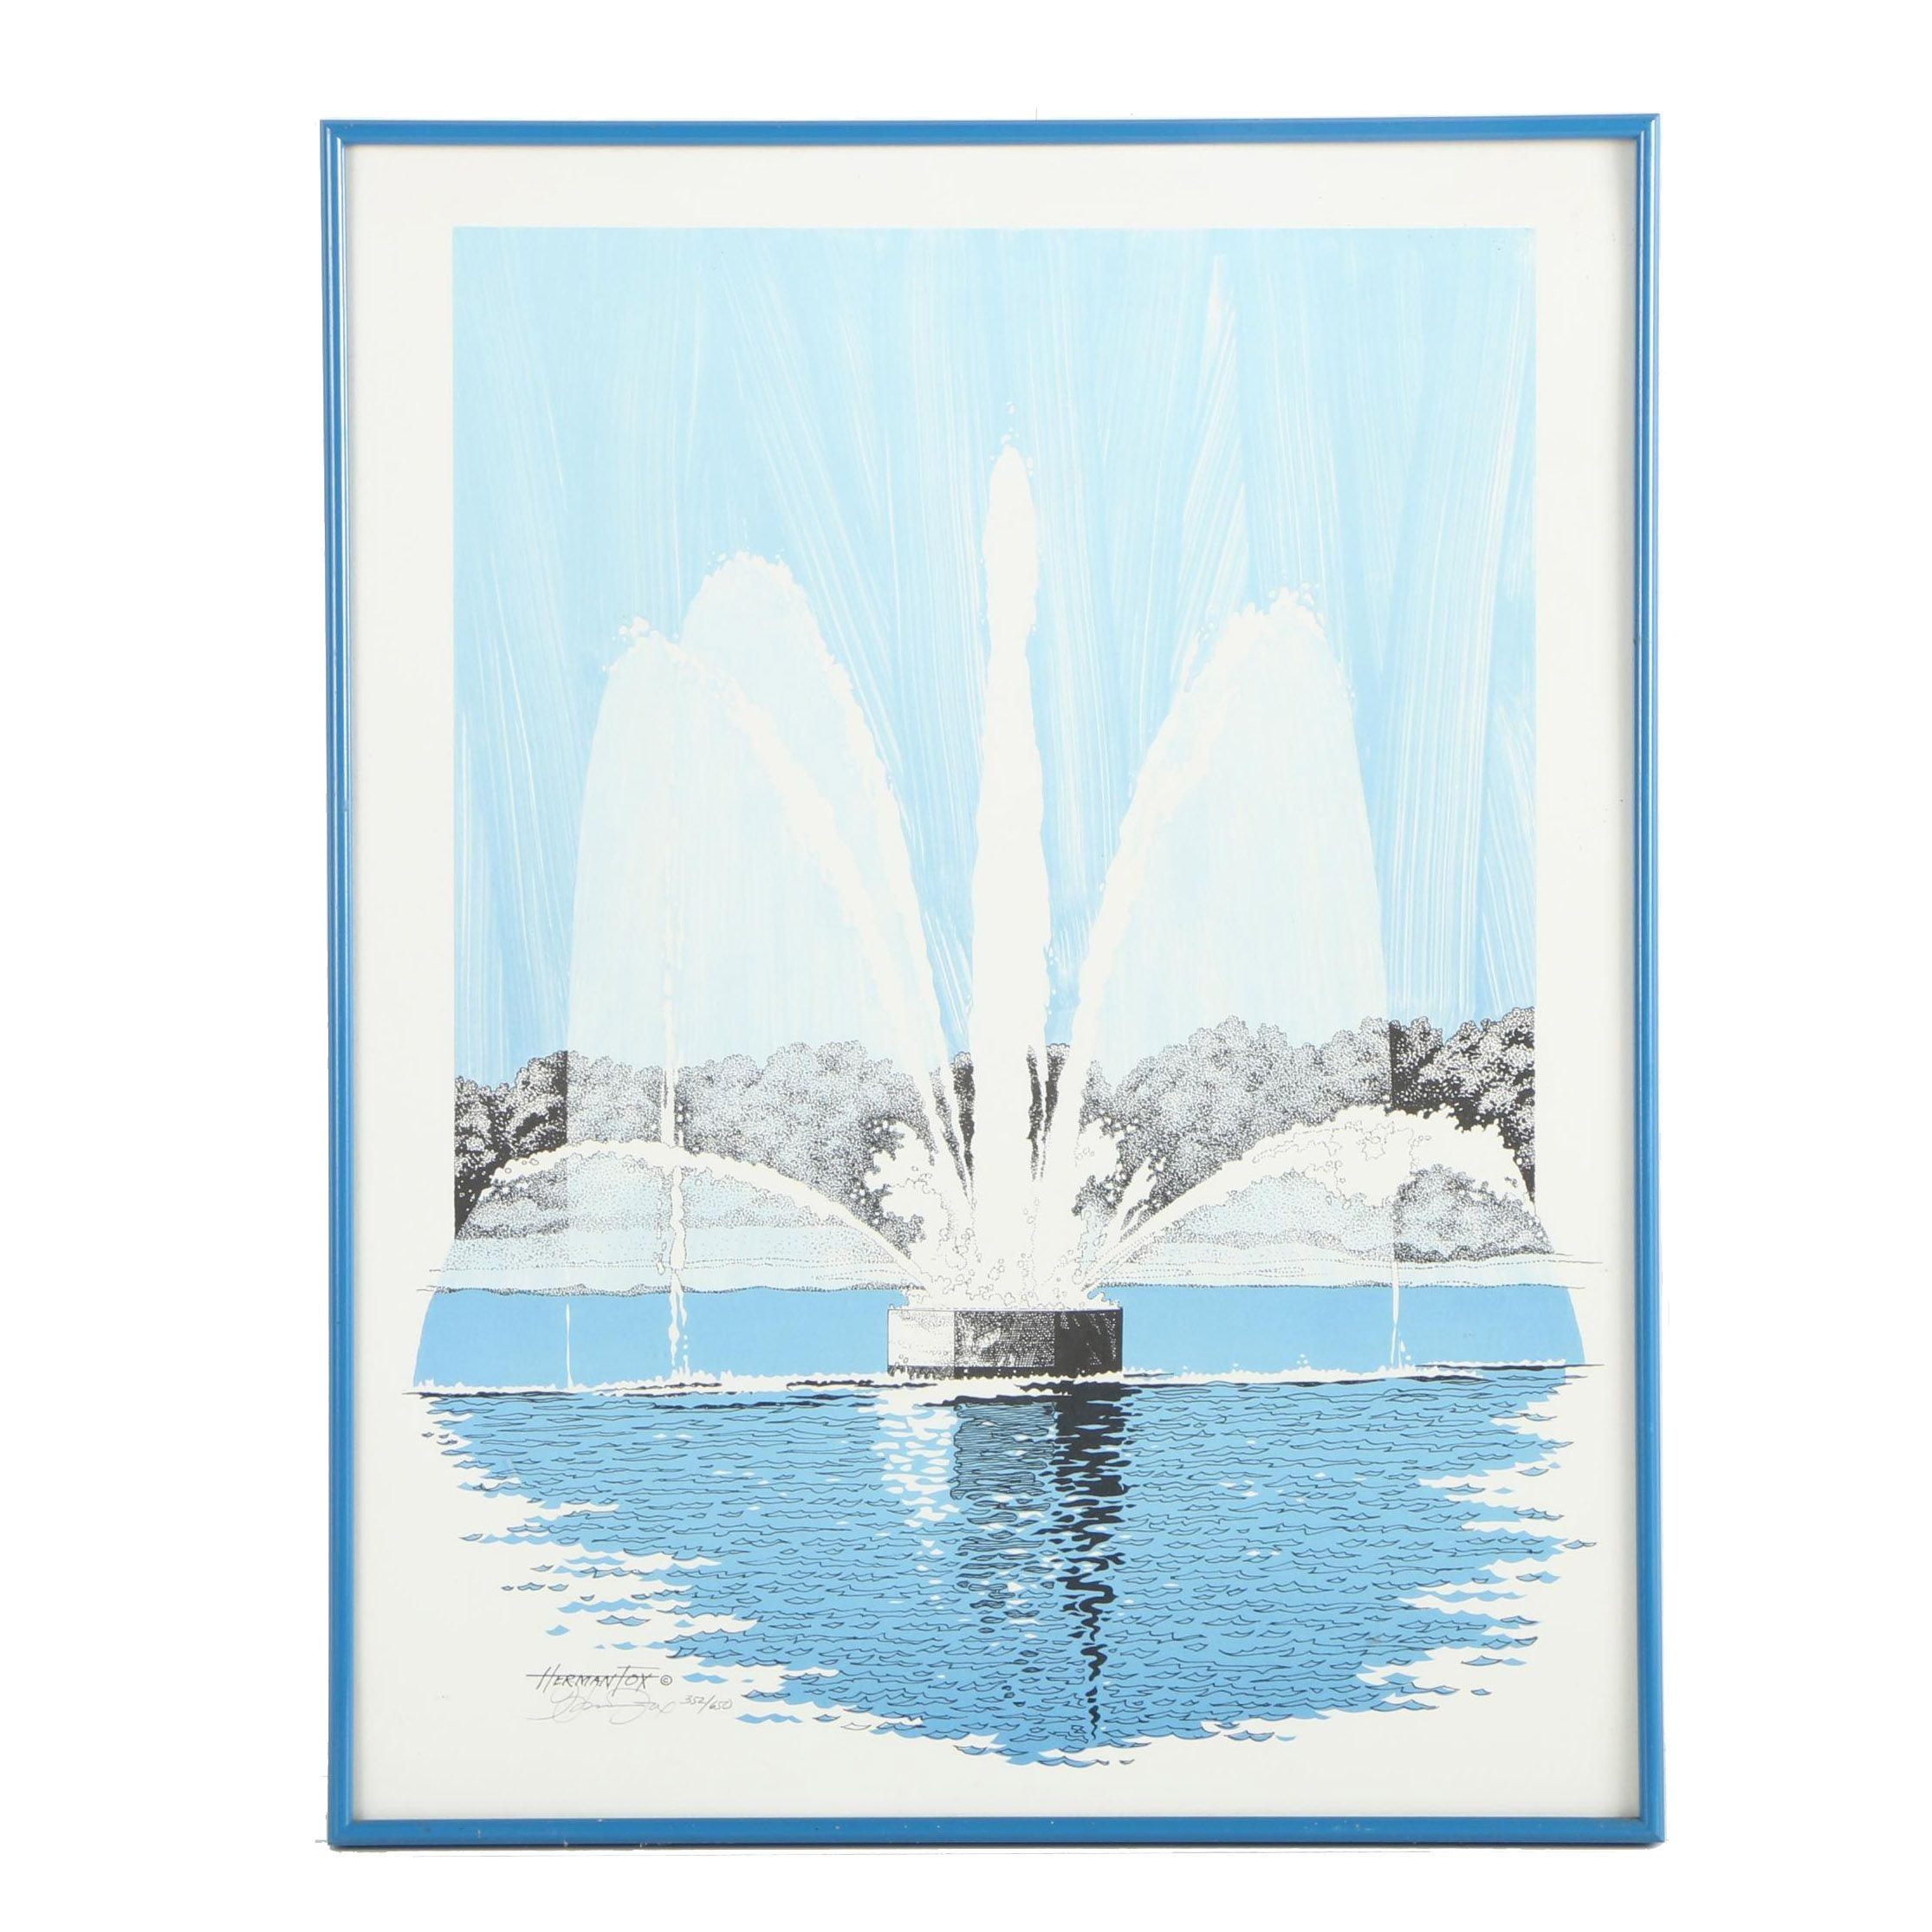 Herman Fox Circa 1980s Limited Edition Offset Lithograph of a Park Fountain